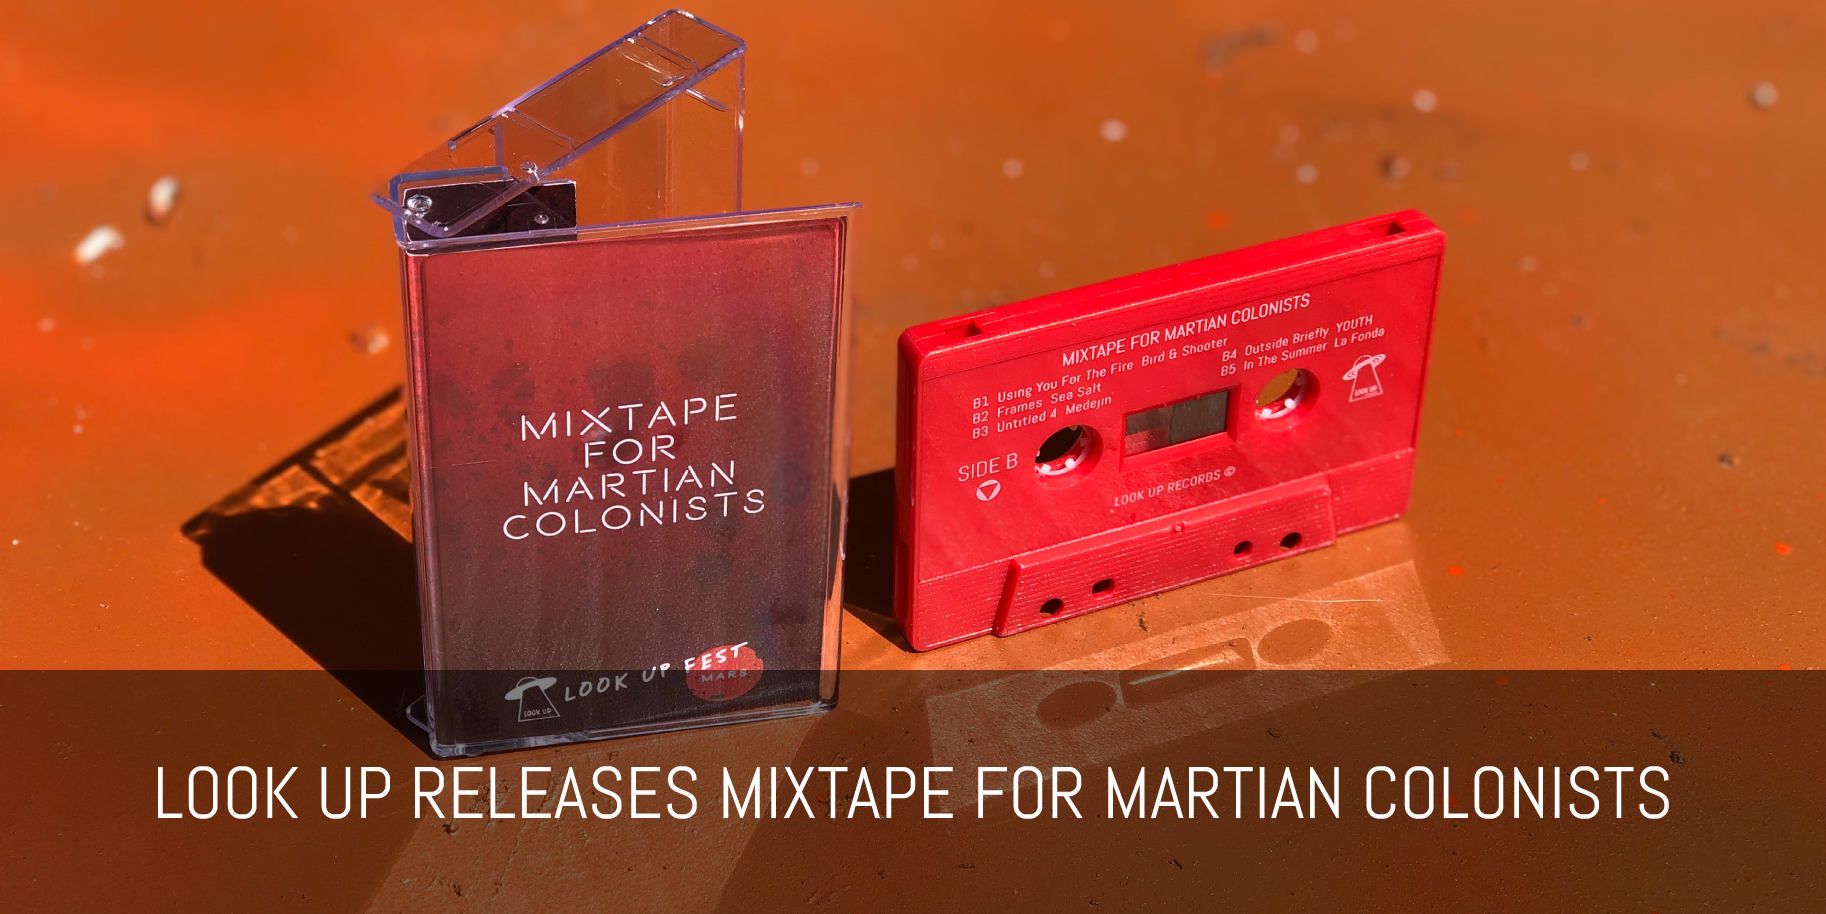 MARTIAN-COLONISTS-COMPILATION-RELEASE.png